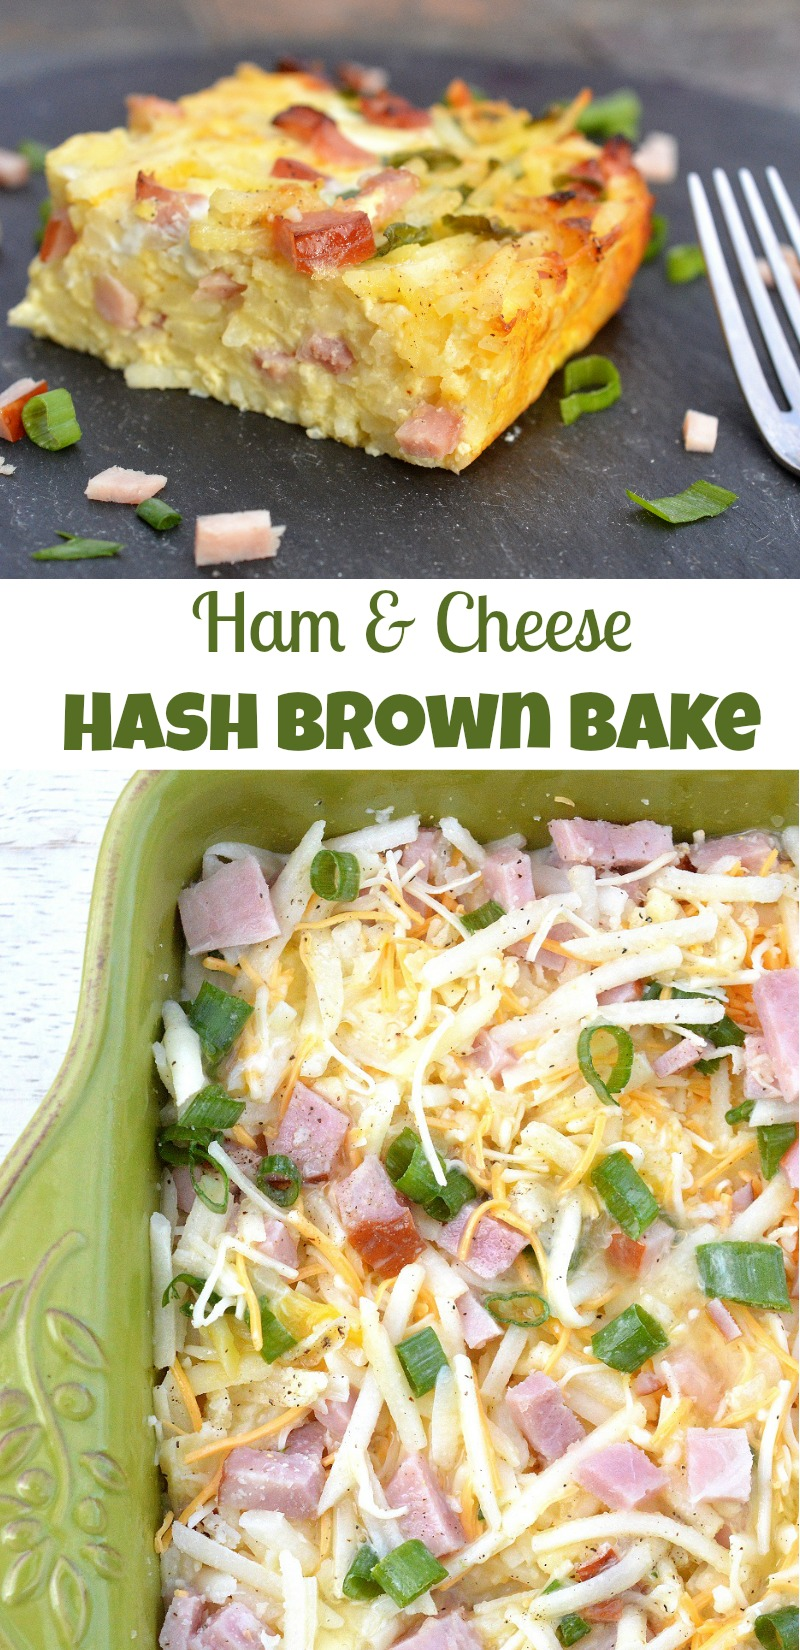 Ham and Cheese hash Brown Bake - Easy, delicious and a great way to use up left over ham!